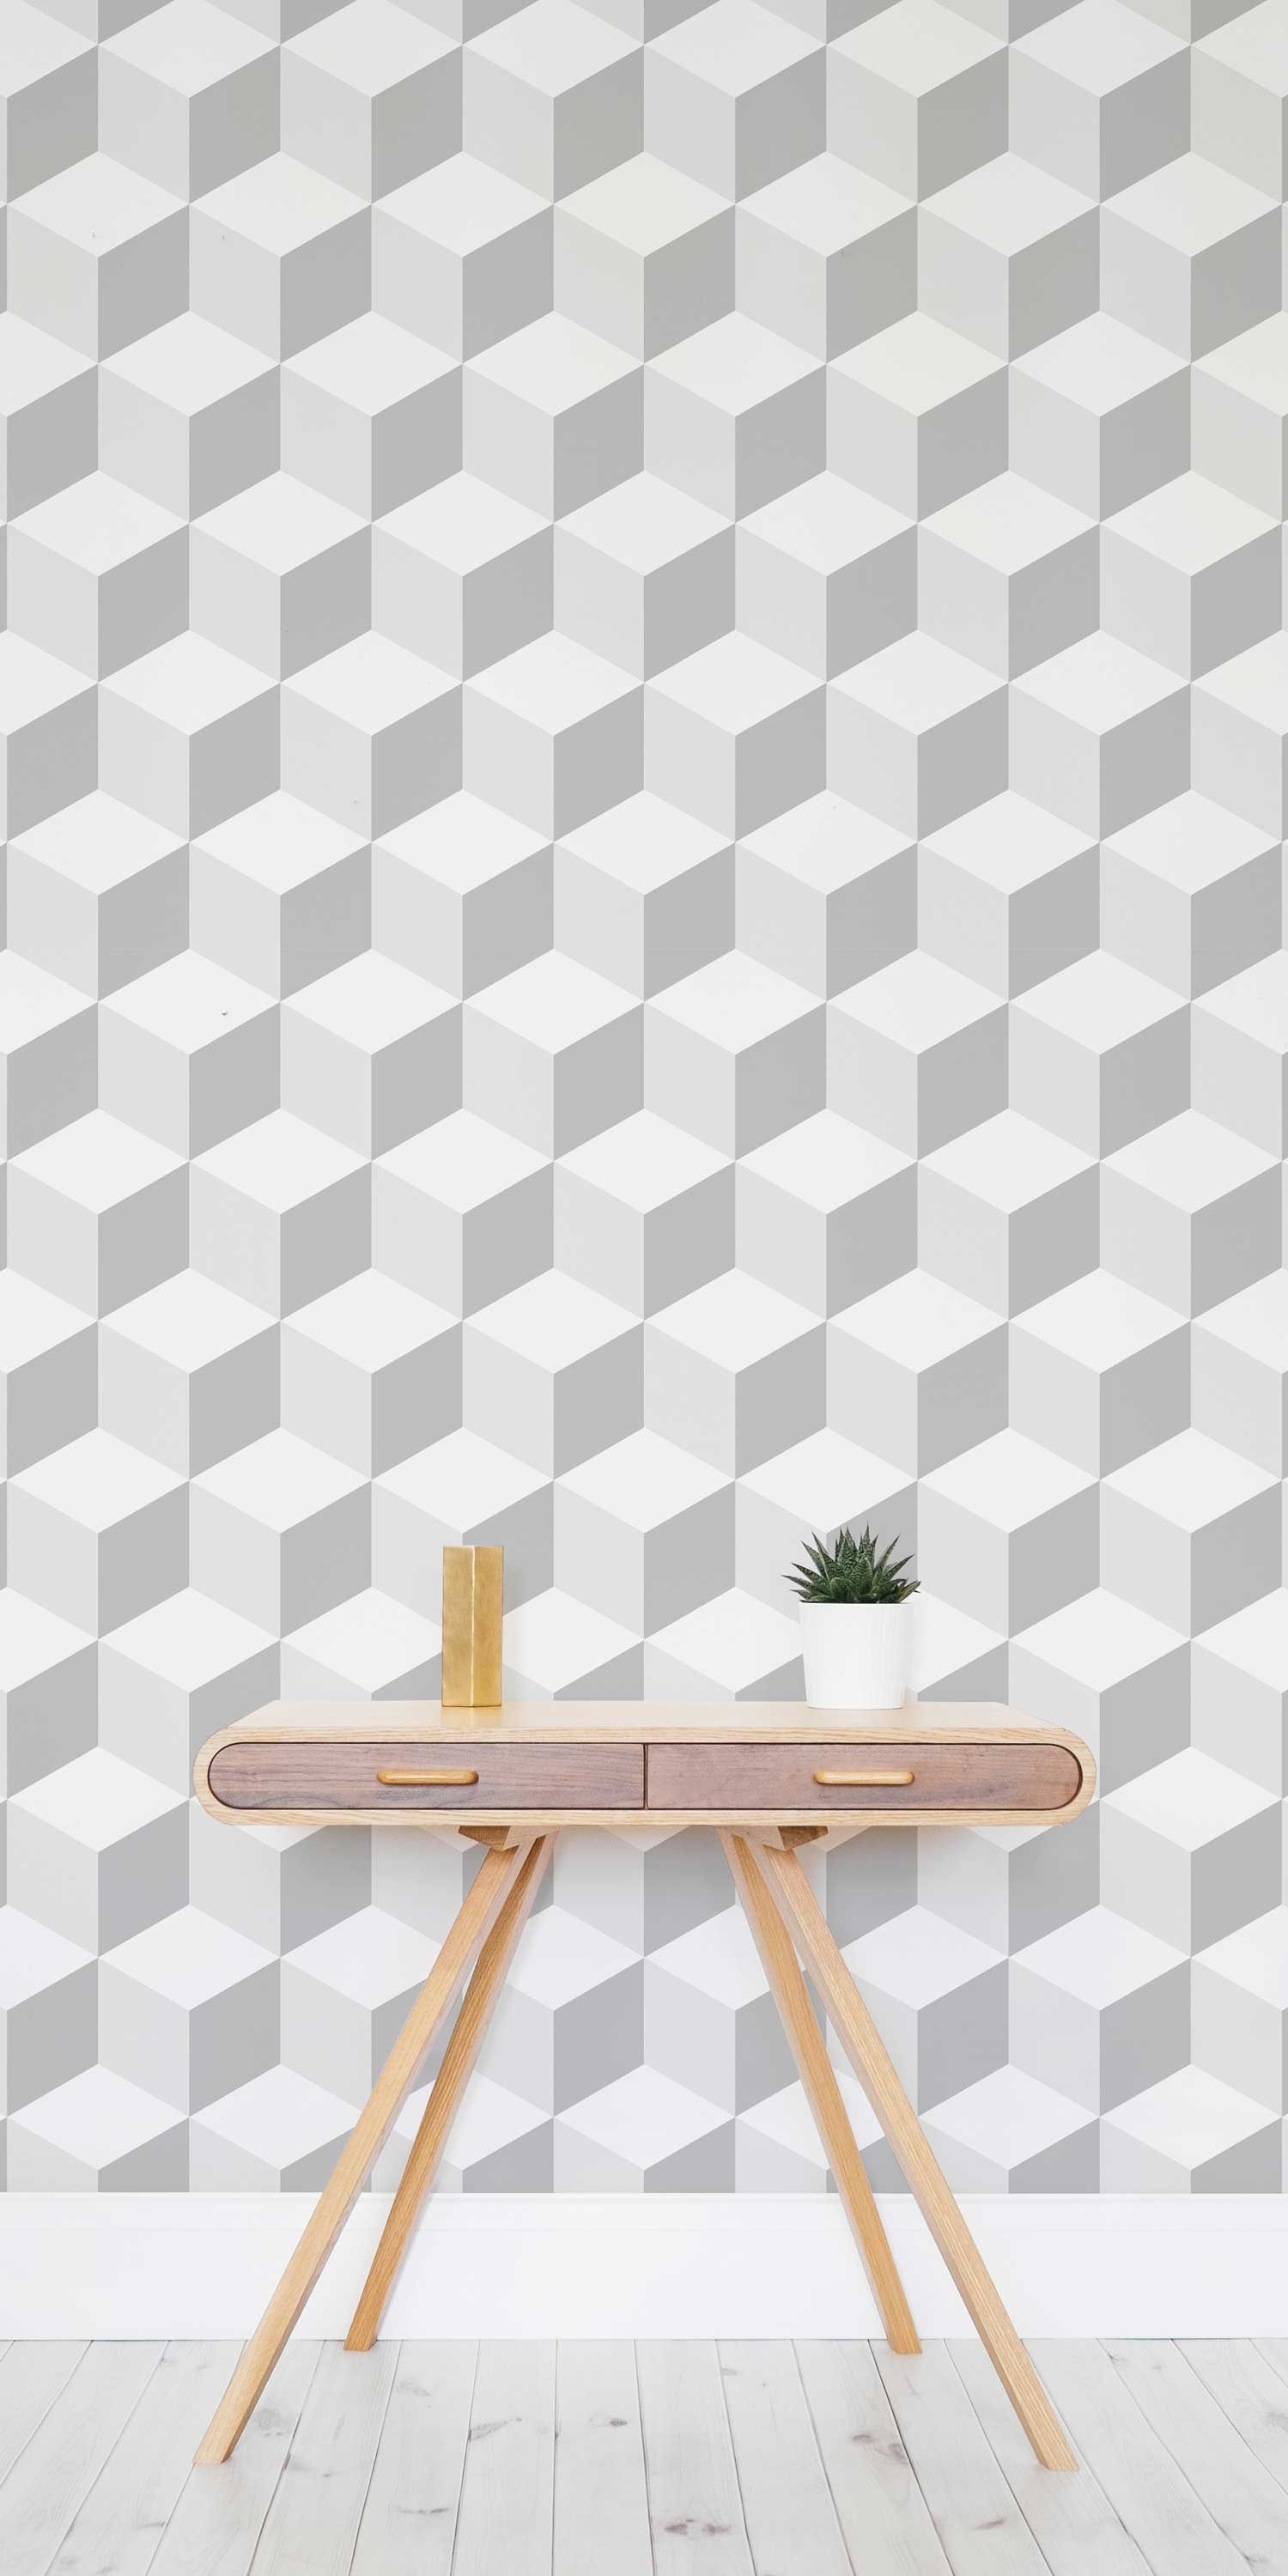 Blues And Greys Together In This 3D Geometric Wallpaper Design